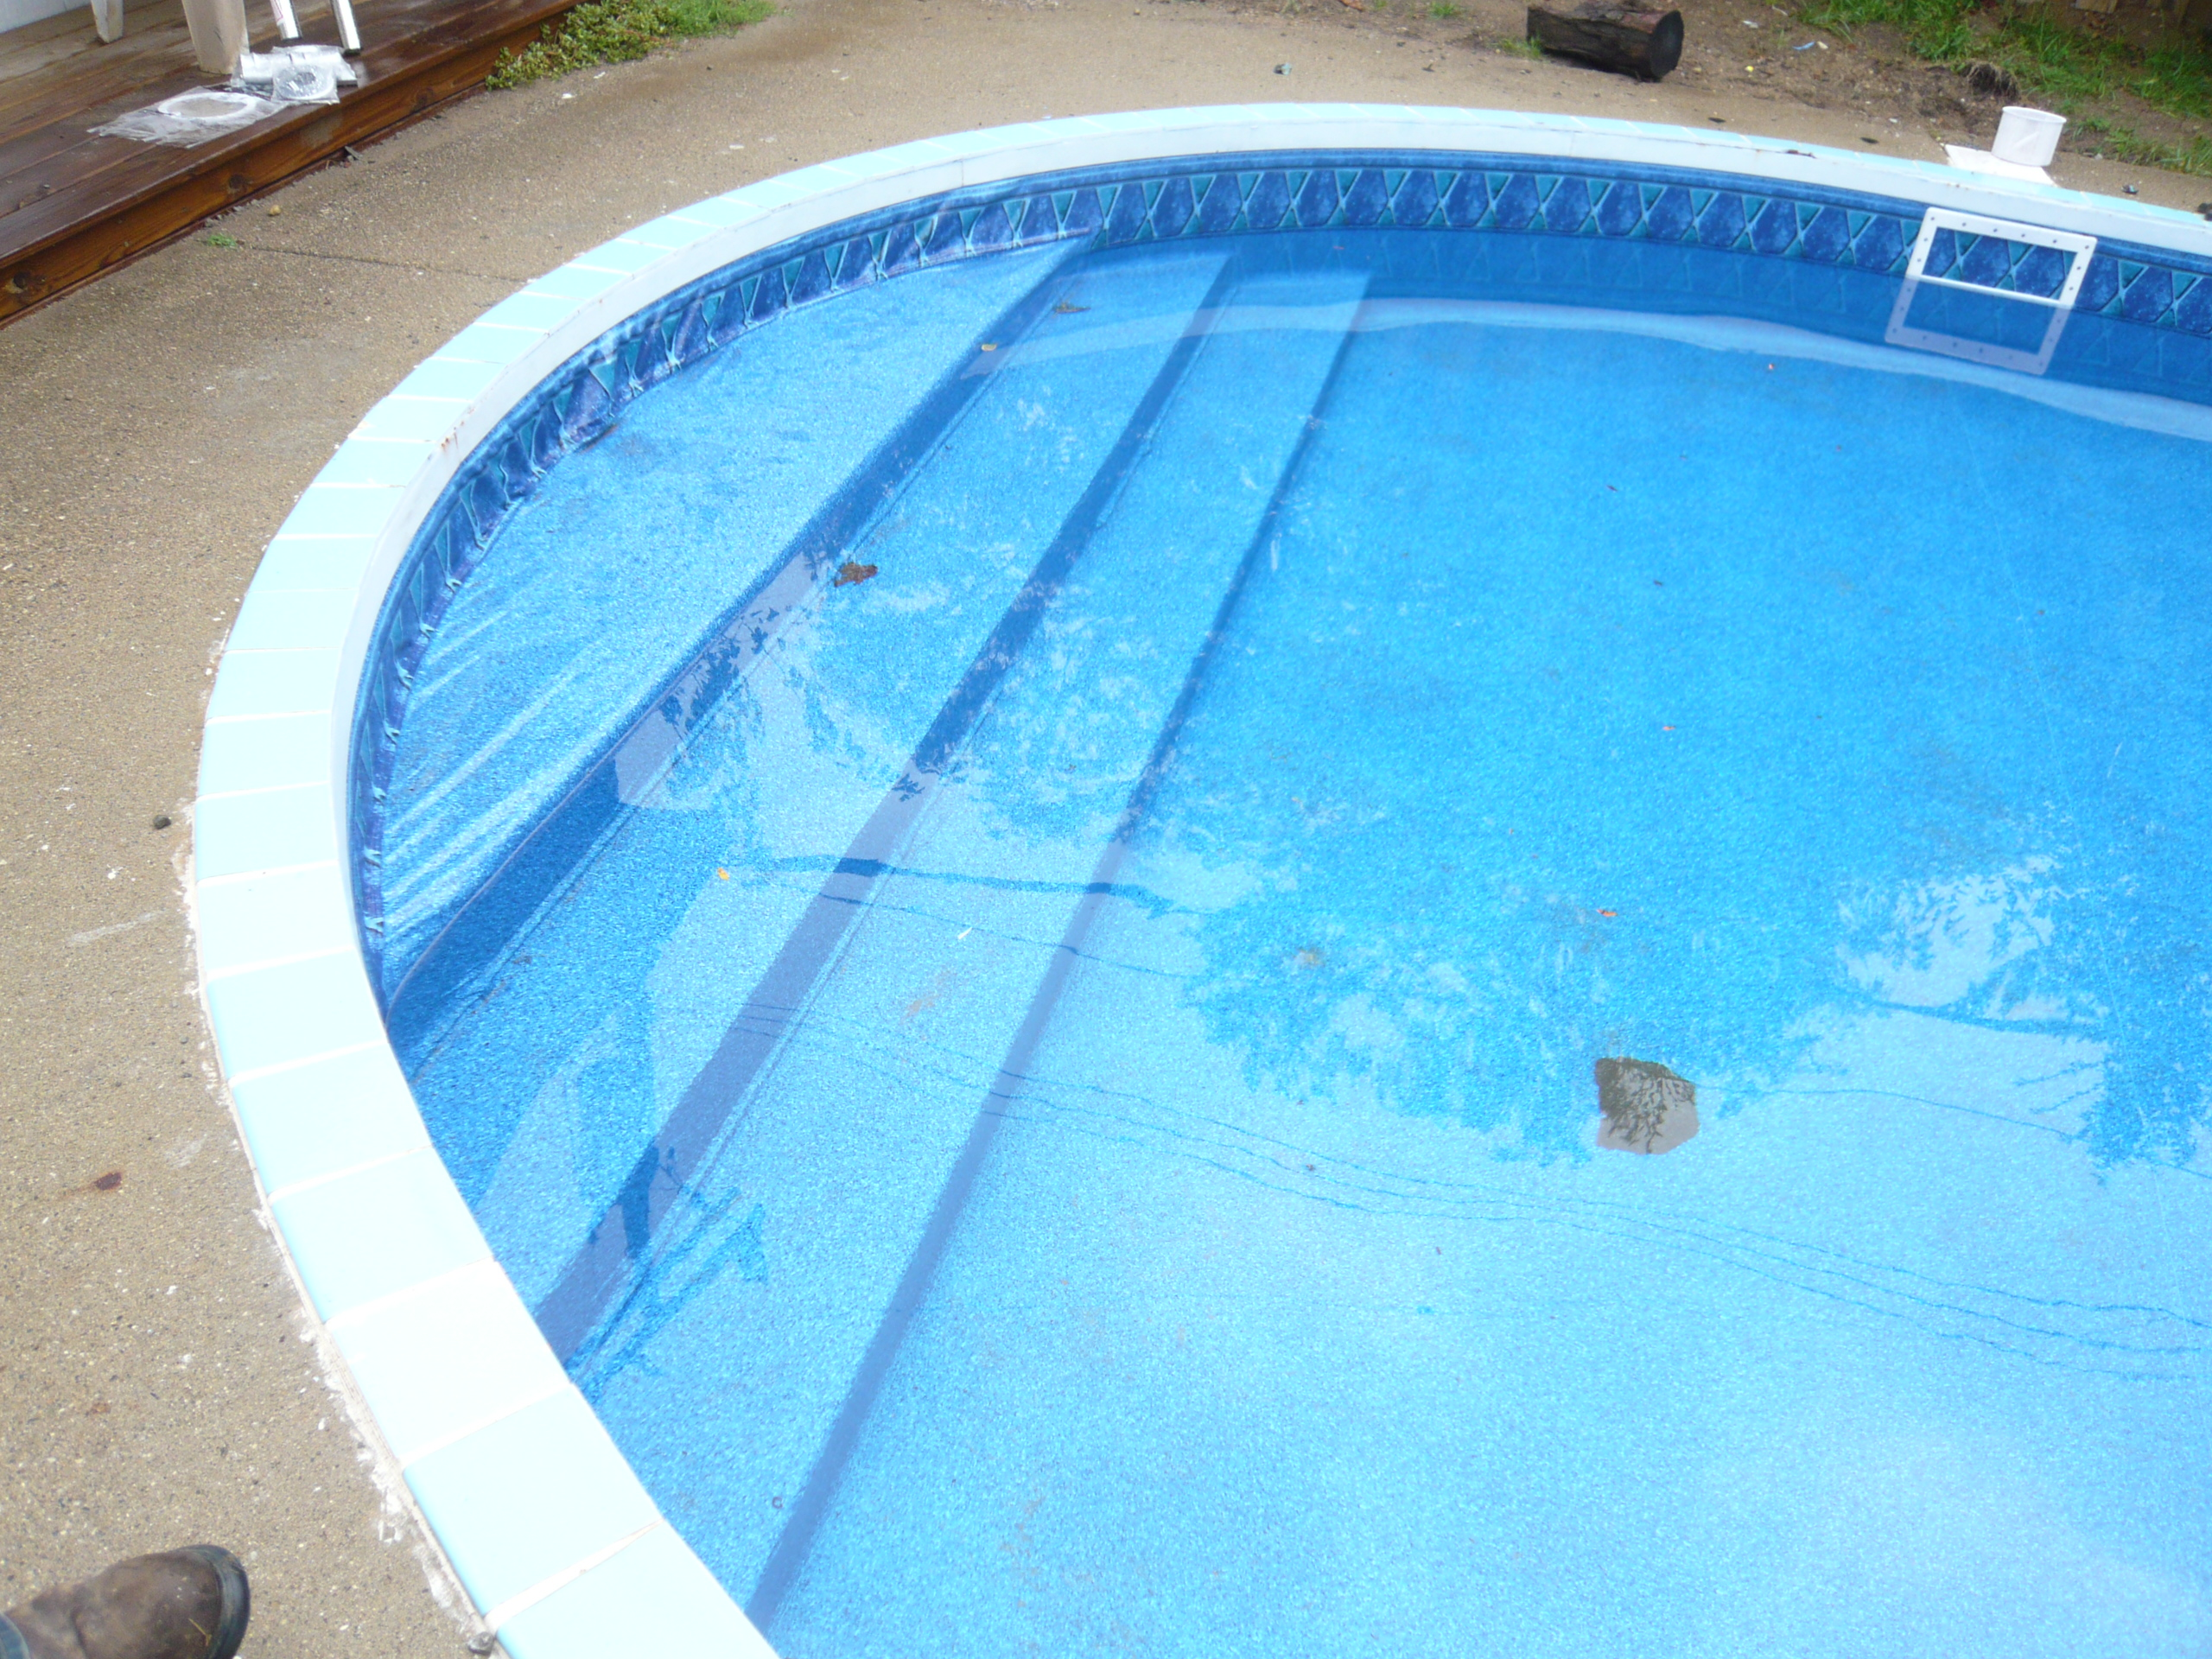 Liner job 2011 done by pietila pools services for Pool liners